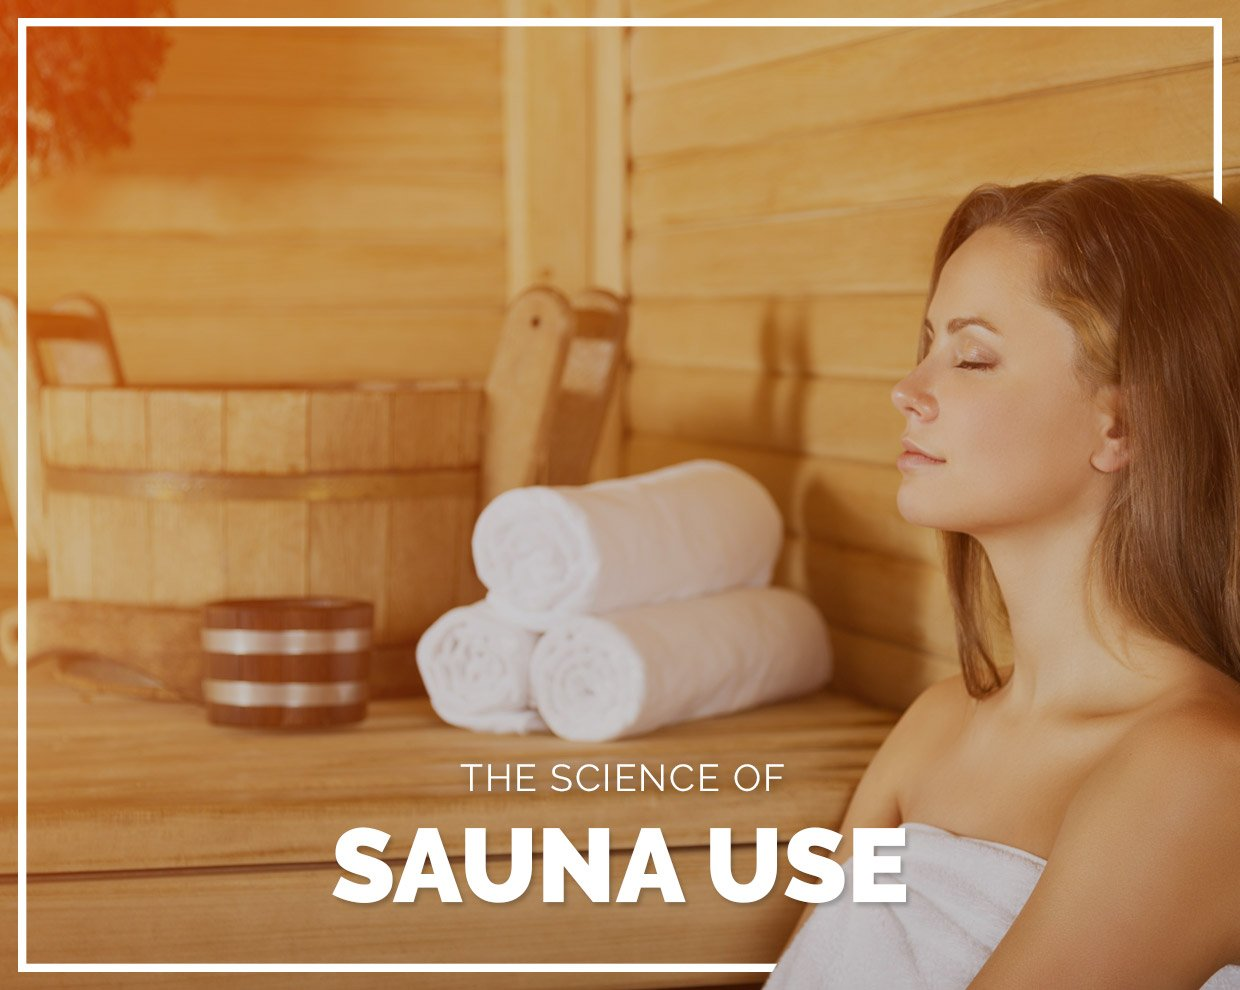 The science of sauna use